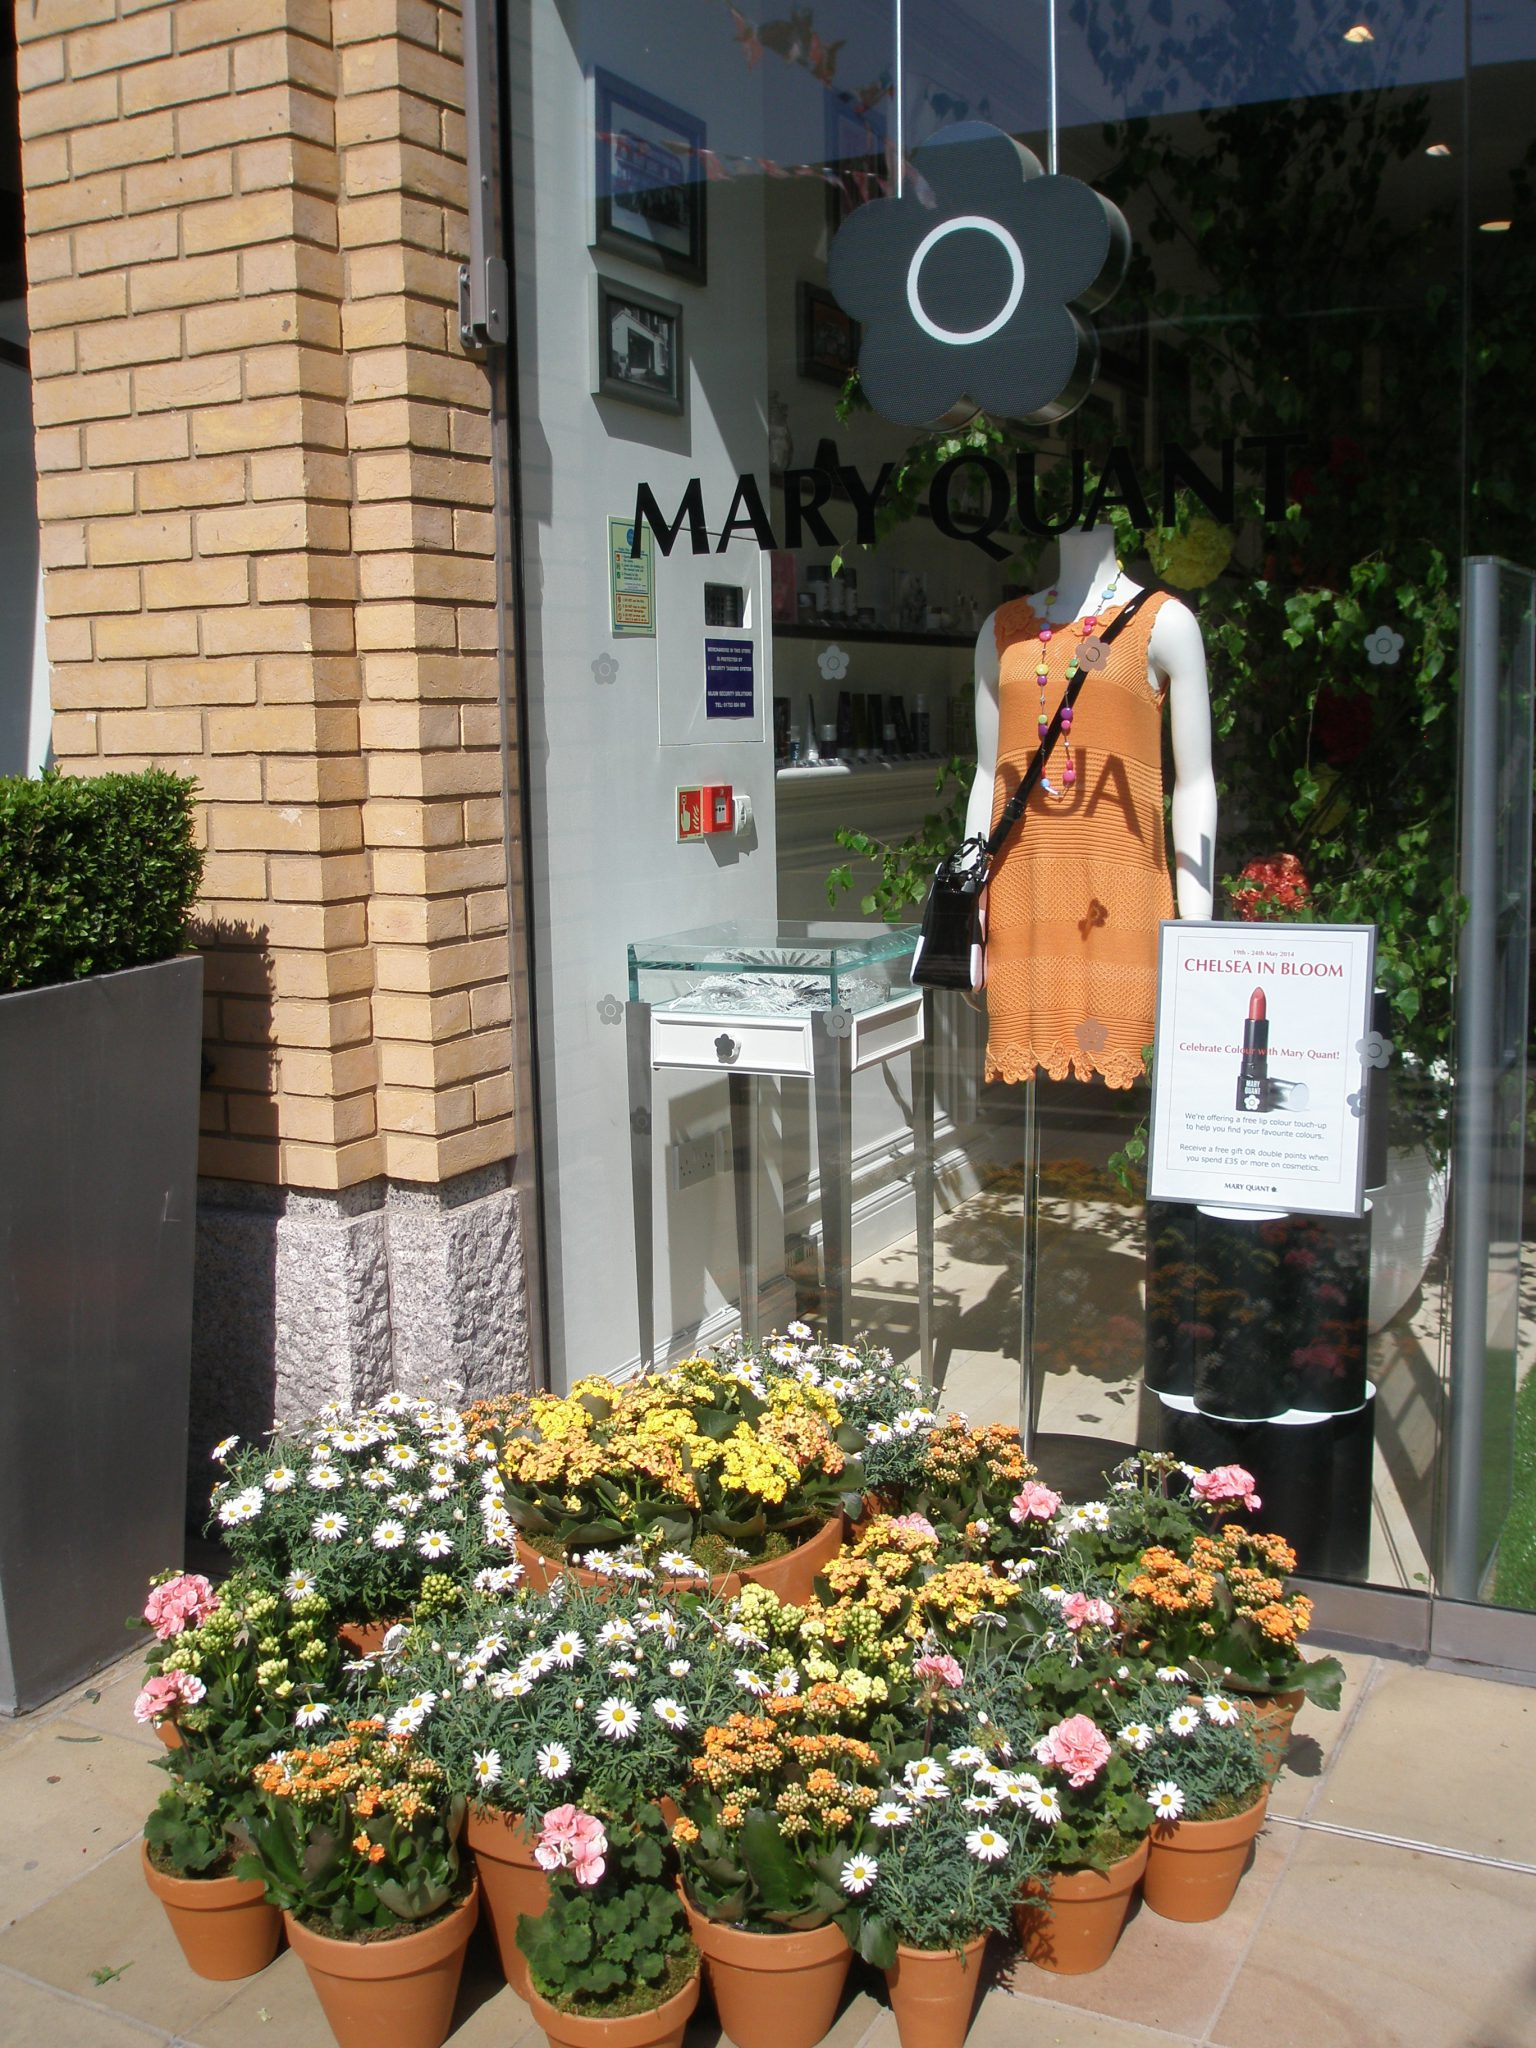 The Mary Quant store on Duke of York Square kept it simple...